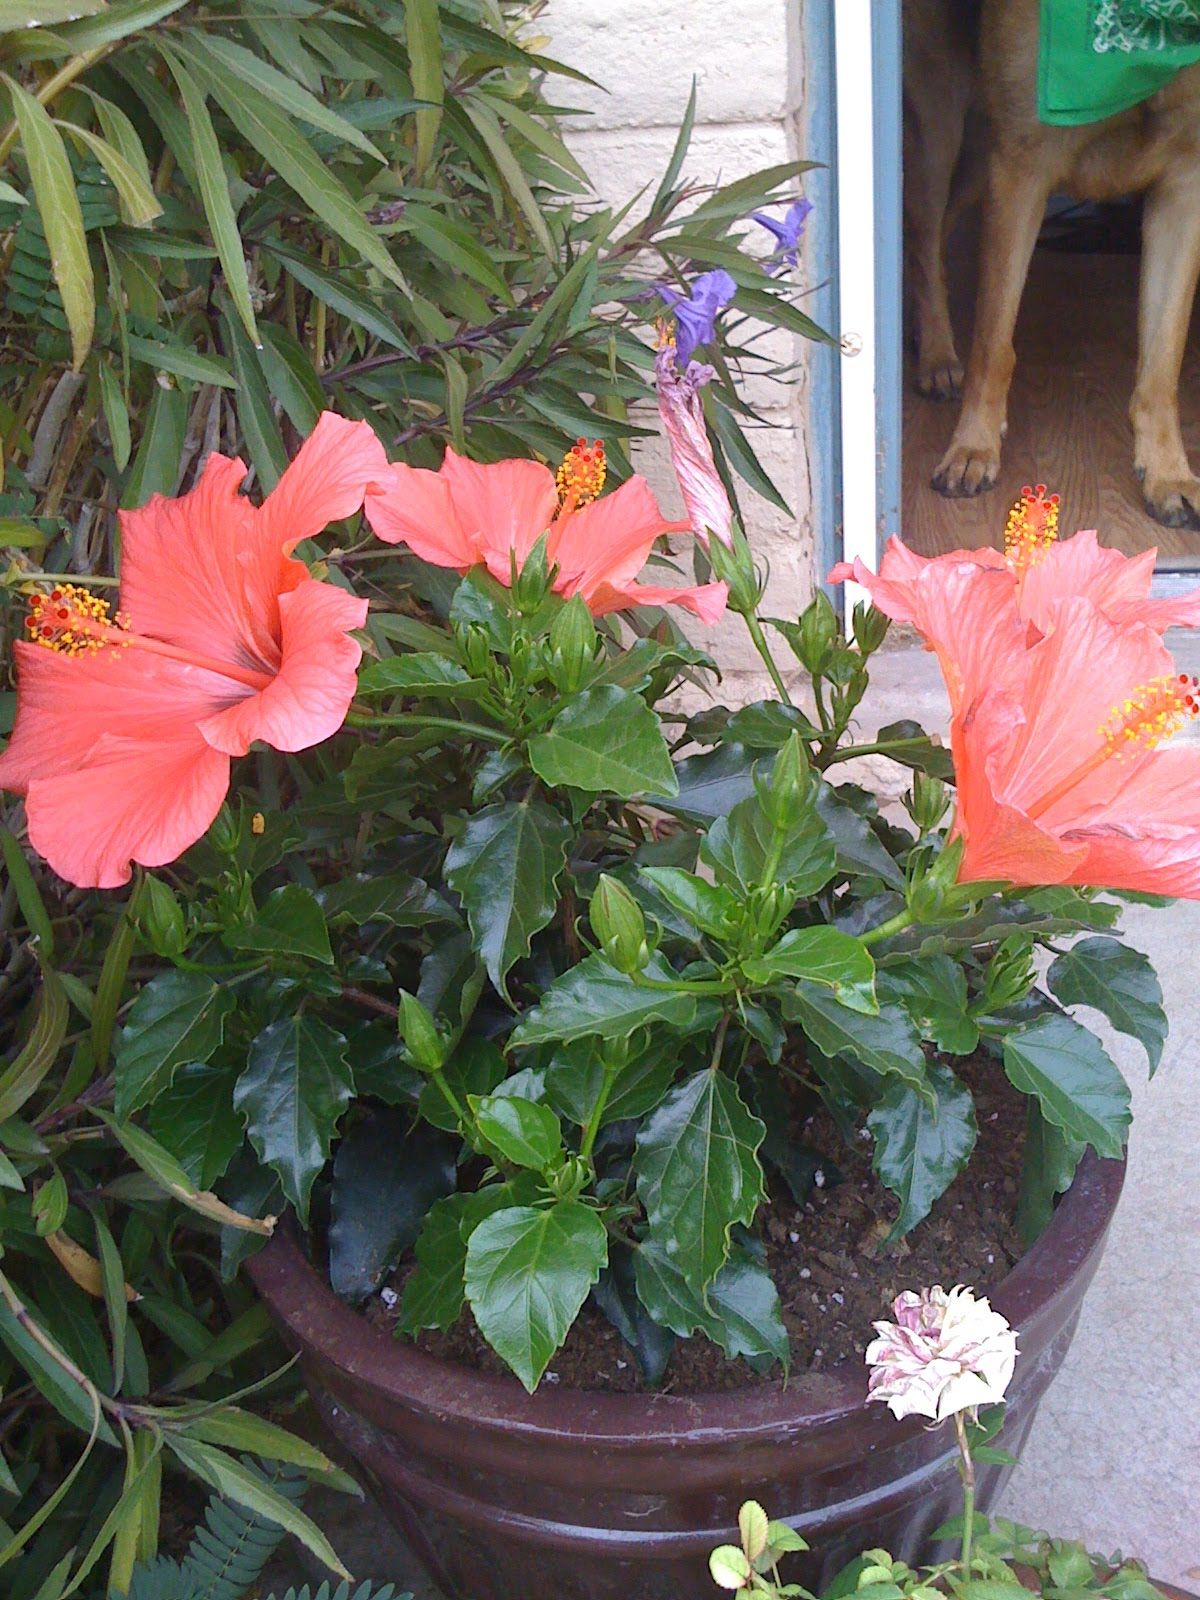 photos of hibiscus in pots on patio